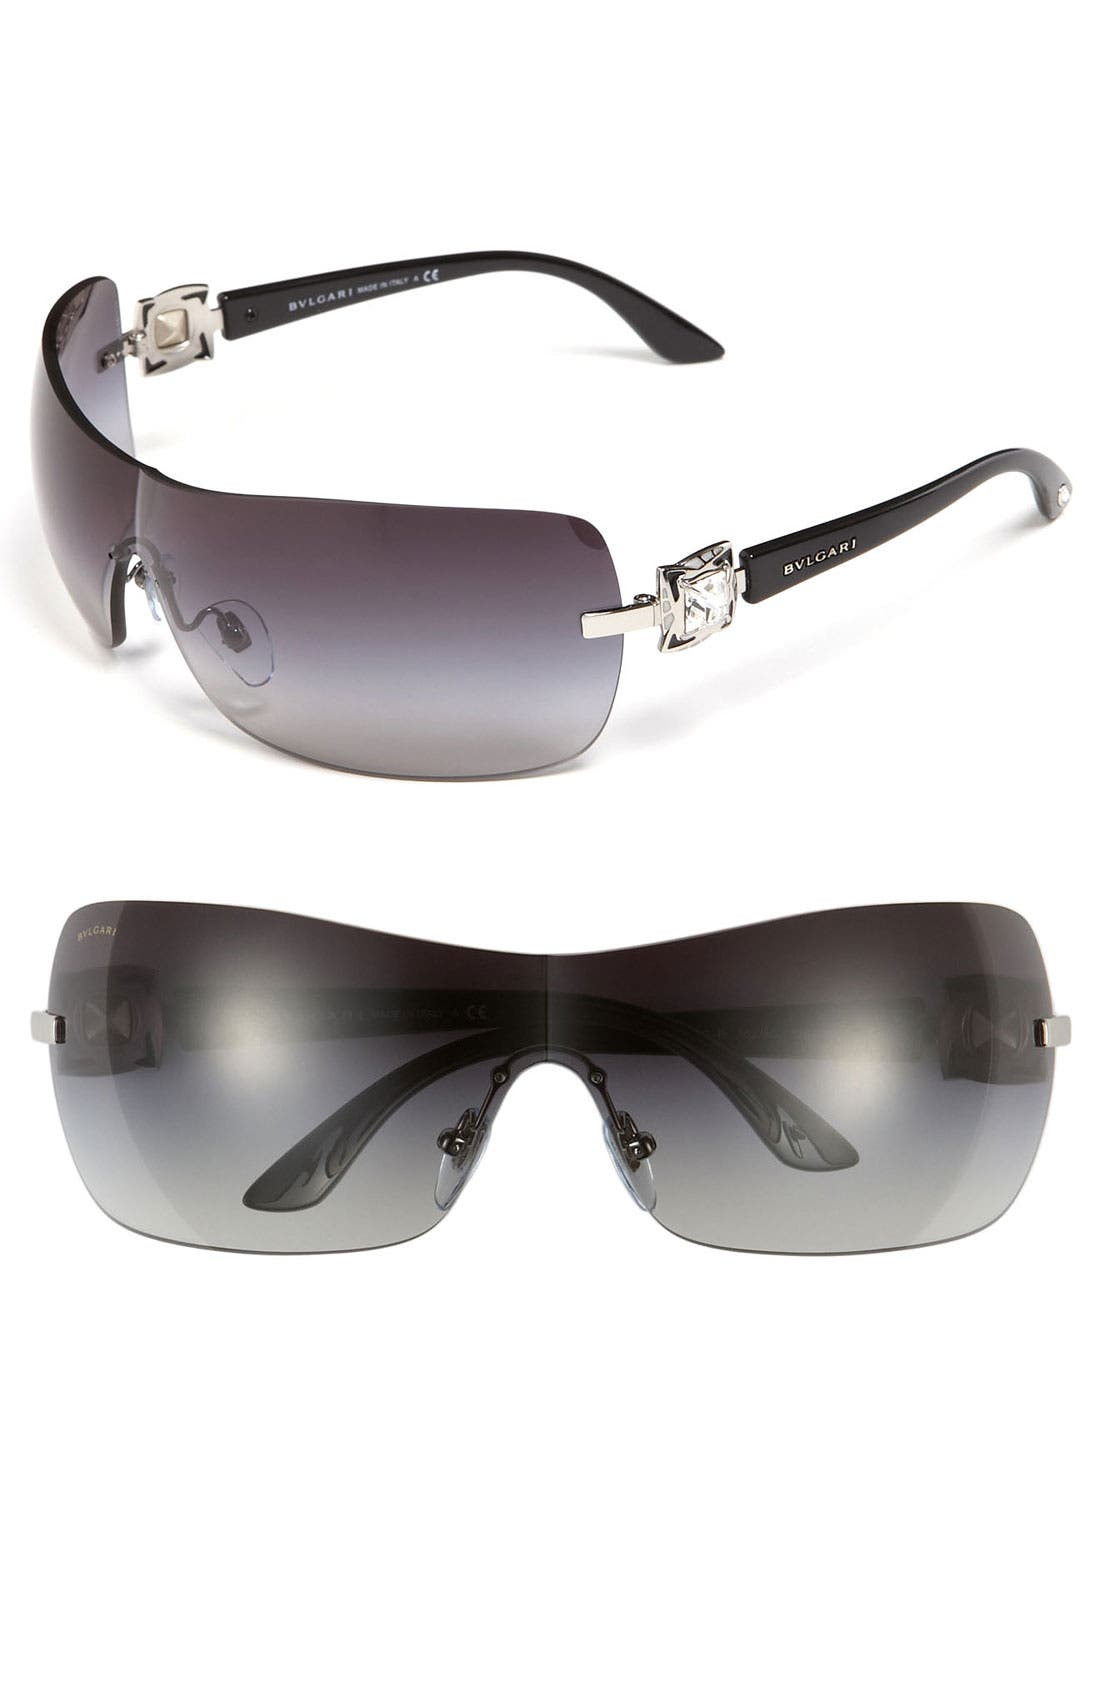 Main Image - BVLGARI 63mm Swarovski Crystal Shield Sunglasses